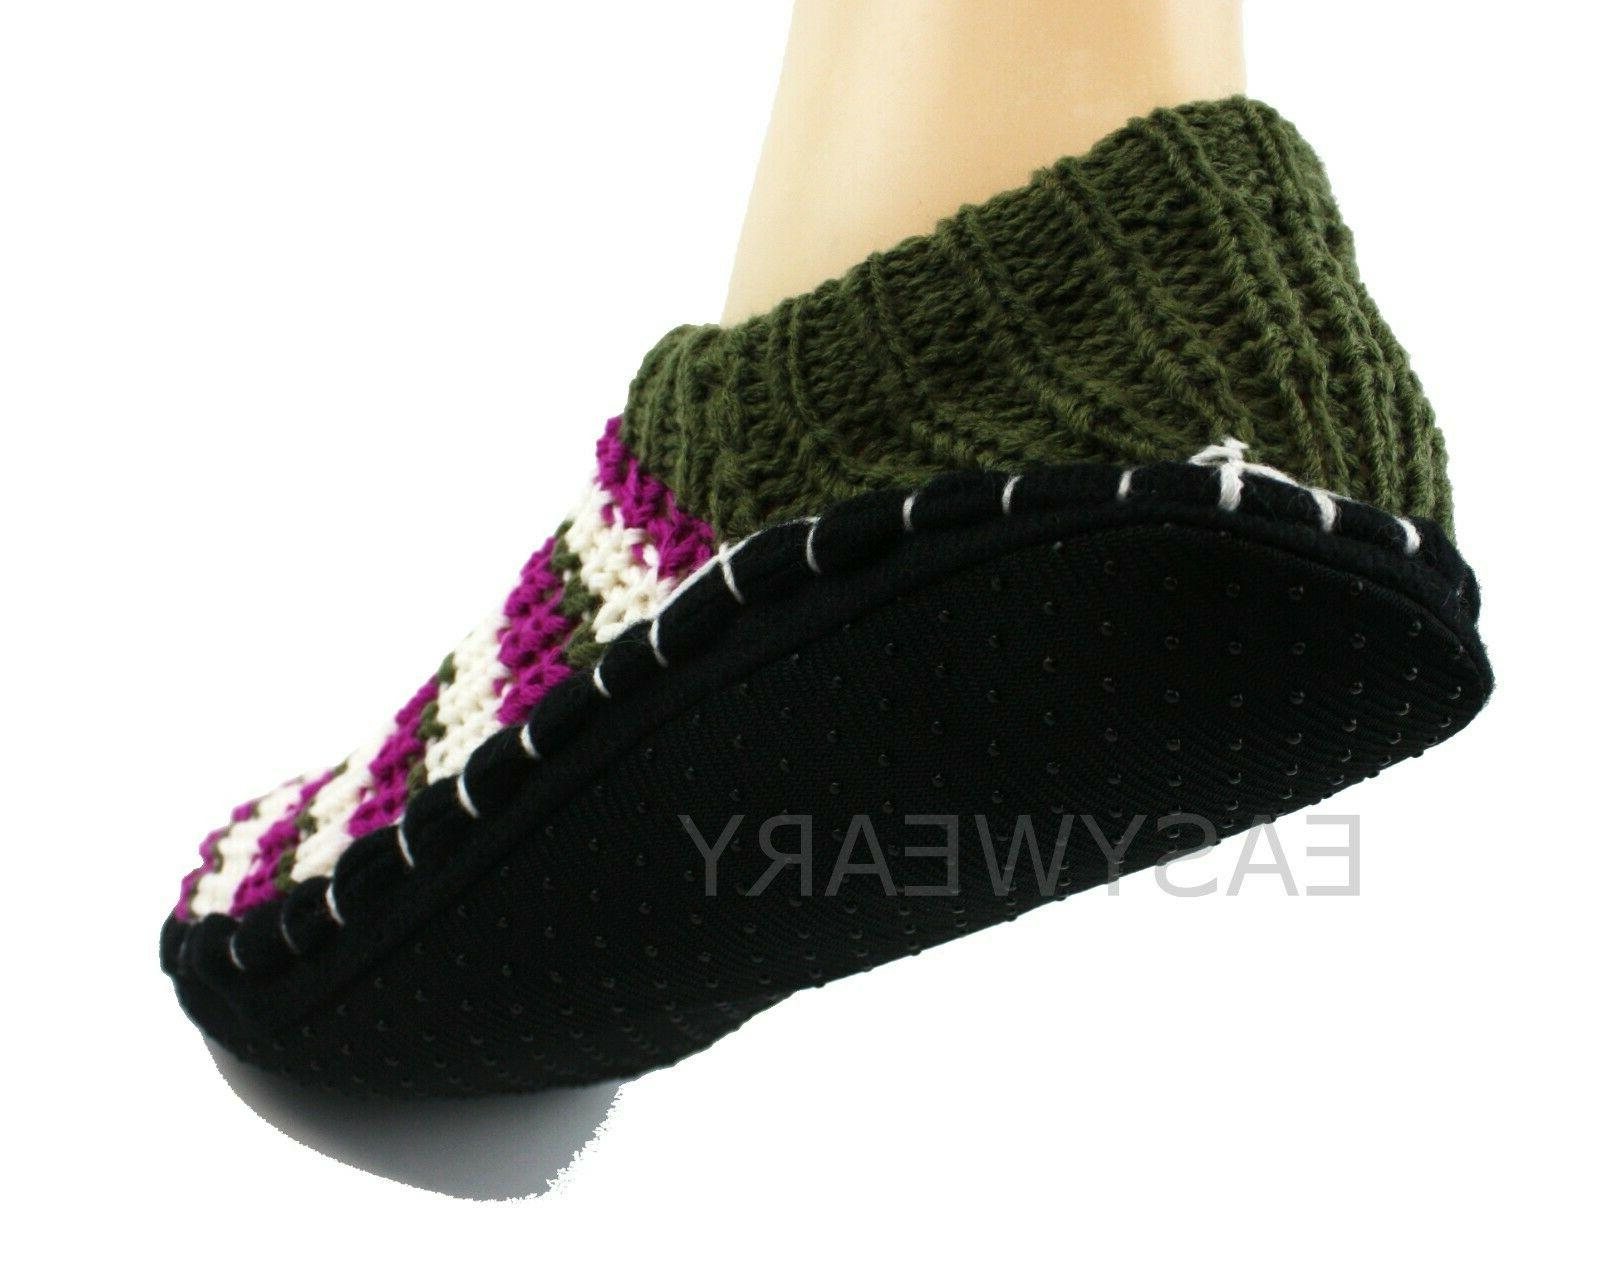 Womens Woven Knit Slip-On Slippers Shoes Non-Skid